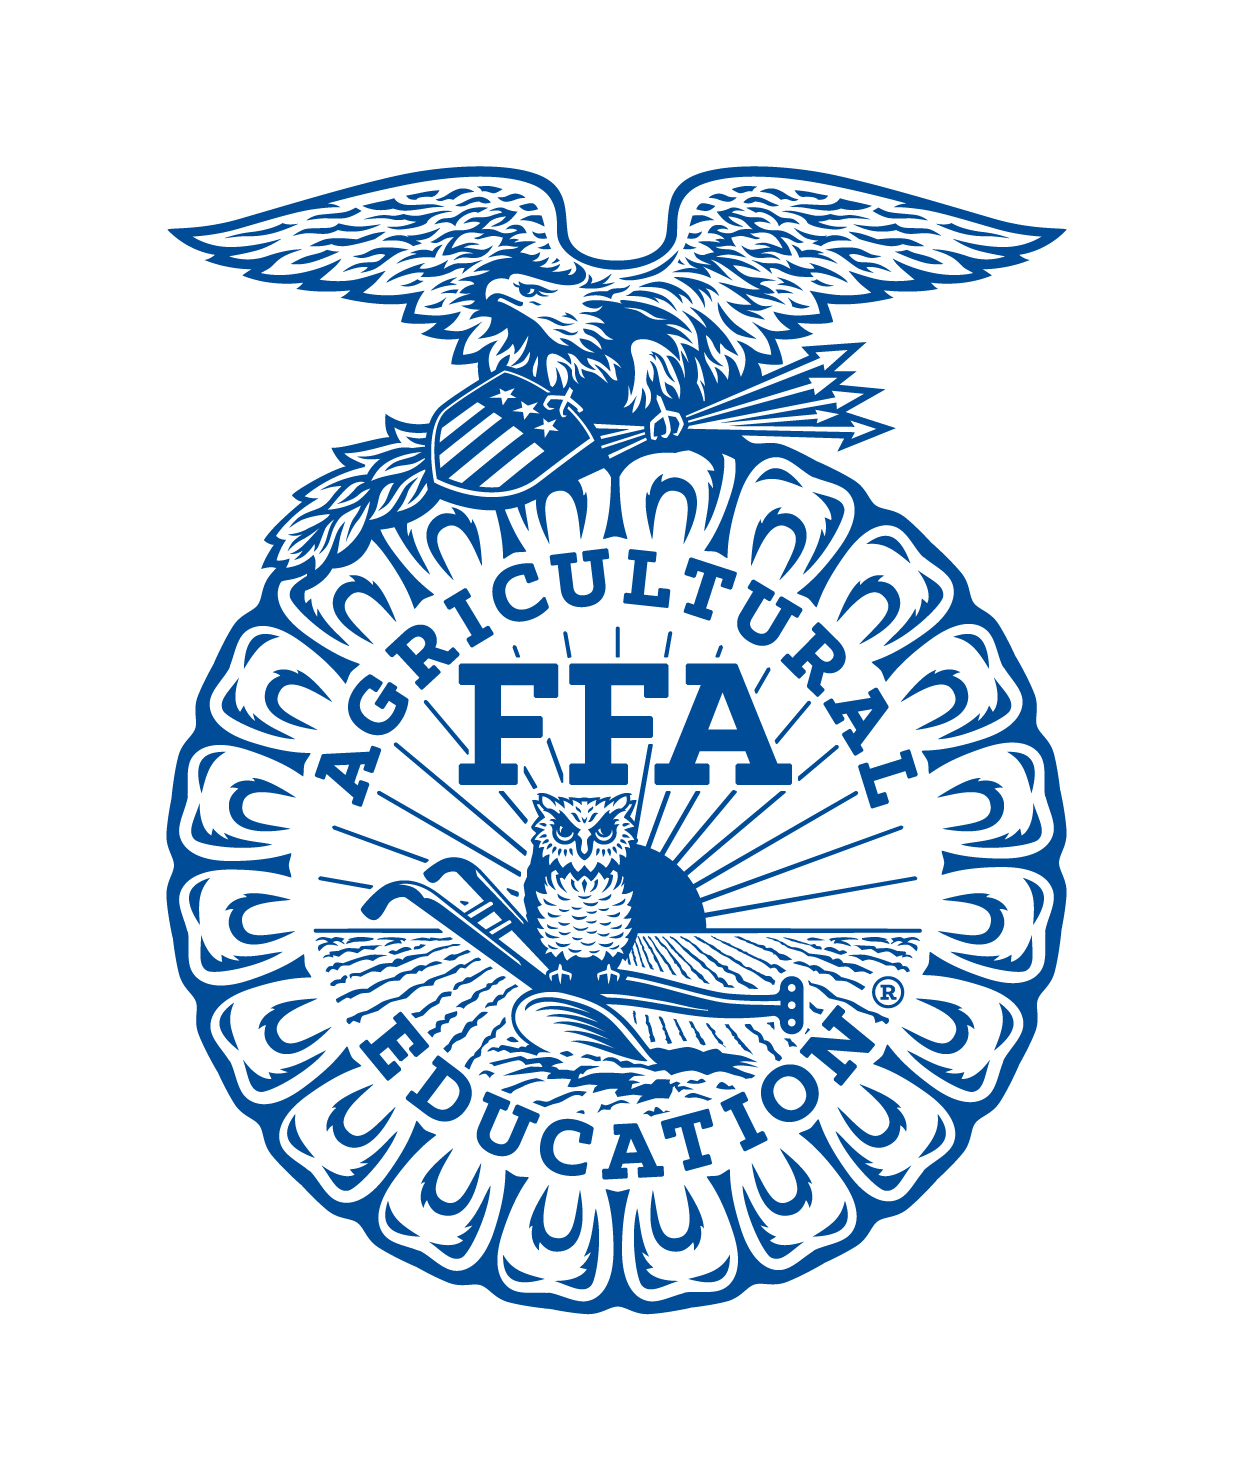 nationalffa-emblem-r-1c-blue2945-rgb.jpg